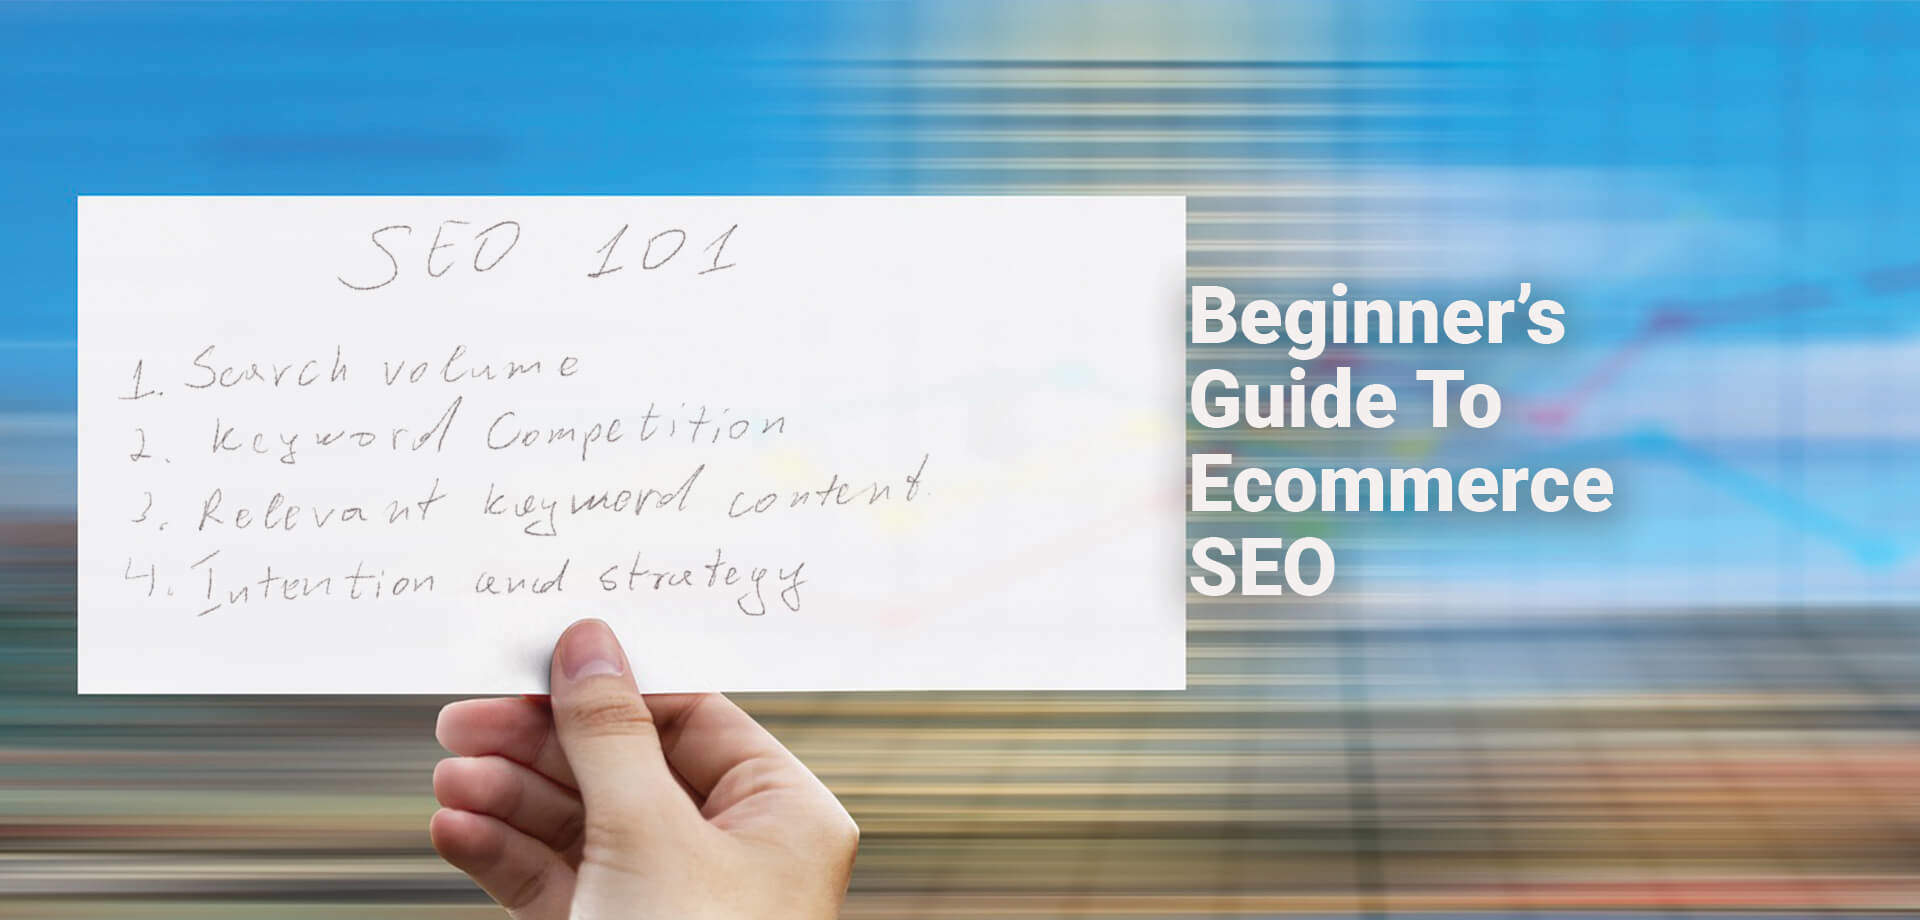 Beginner's Guide To eCommerce SEO